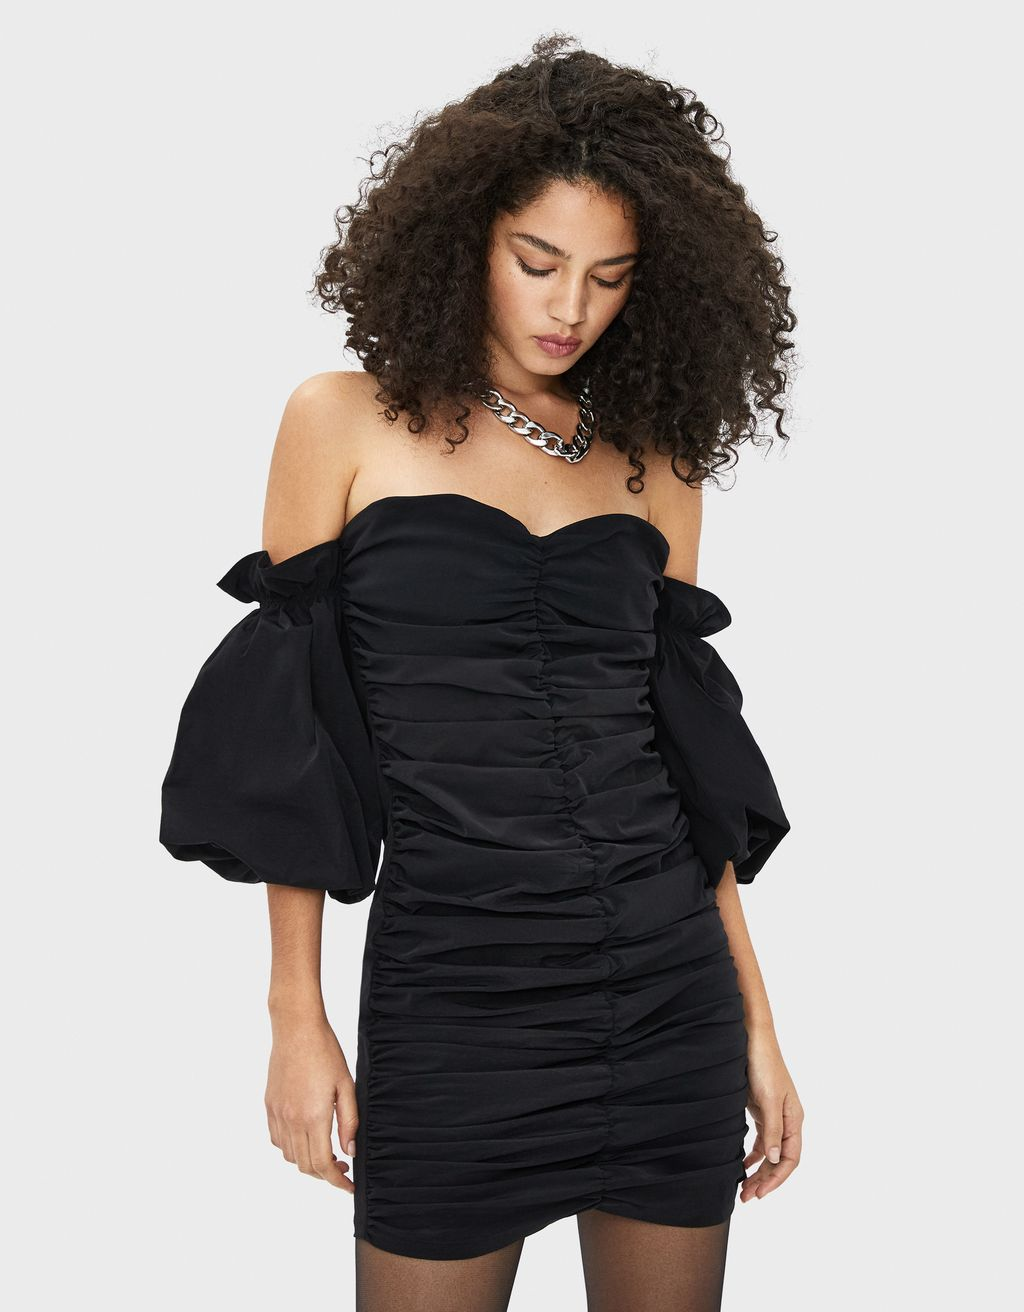 Off-the-shoulder dress with gathering